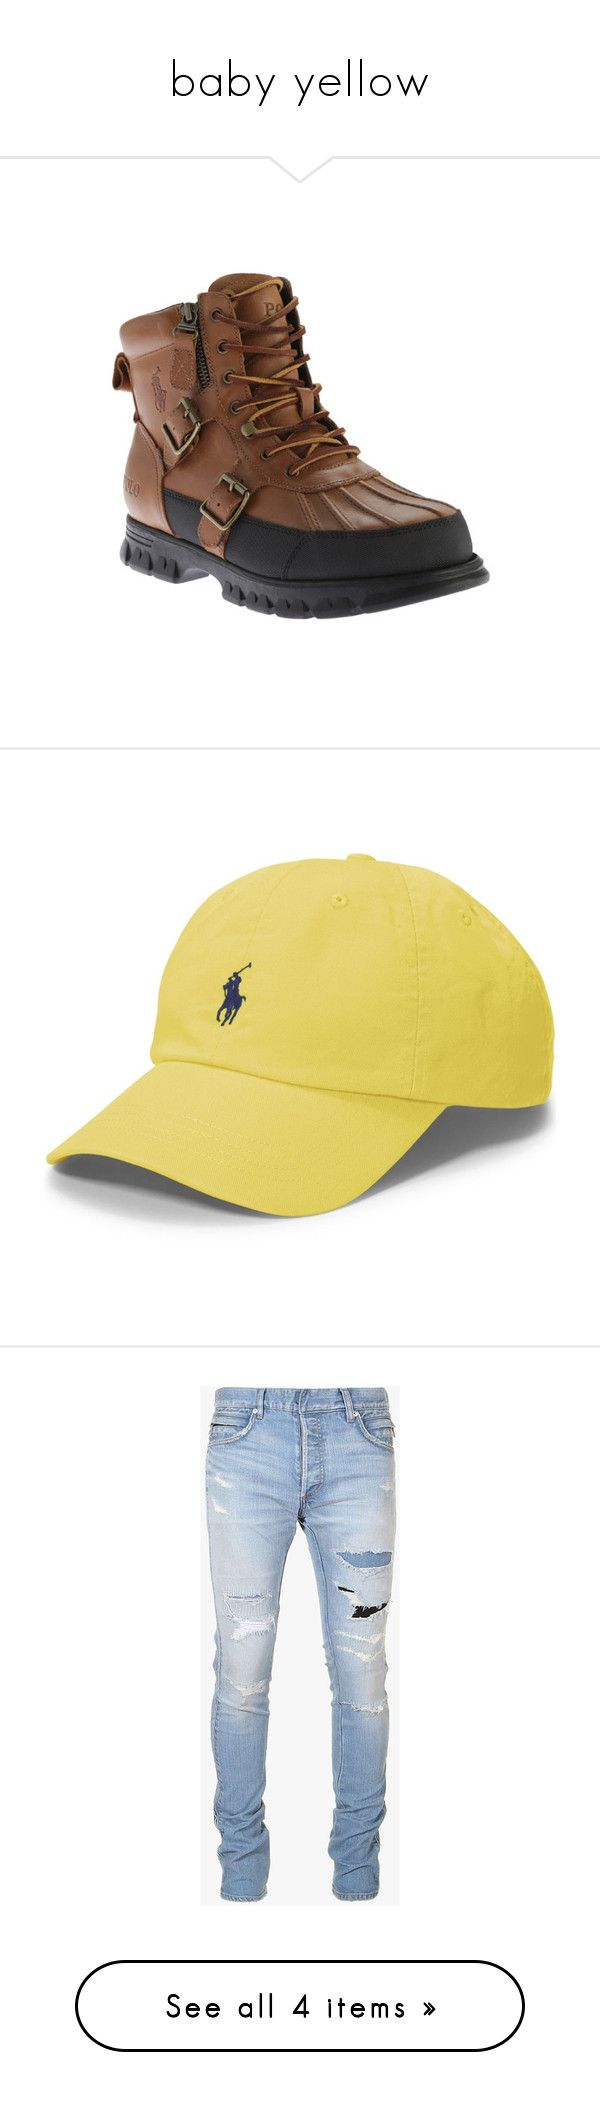 """""""baby yellow"""" by slow-ccxl ❤ liked on Polyvore featuring tops, polo ralph lauren, short sleeve tops, polo shirts, slimming tops, yellow polo shirt, men's fashion, men's shoes, men's boots and casual"""